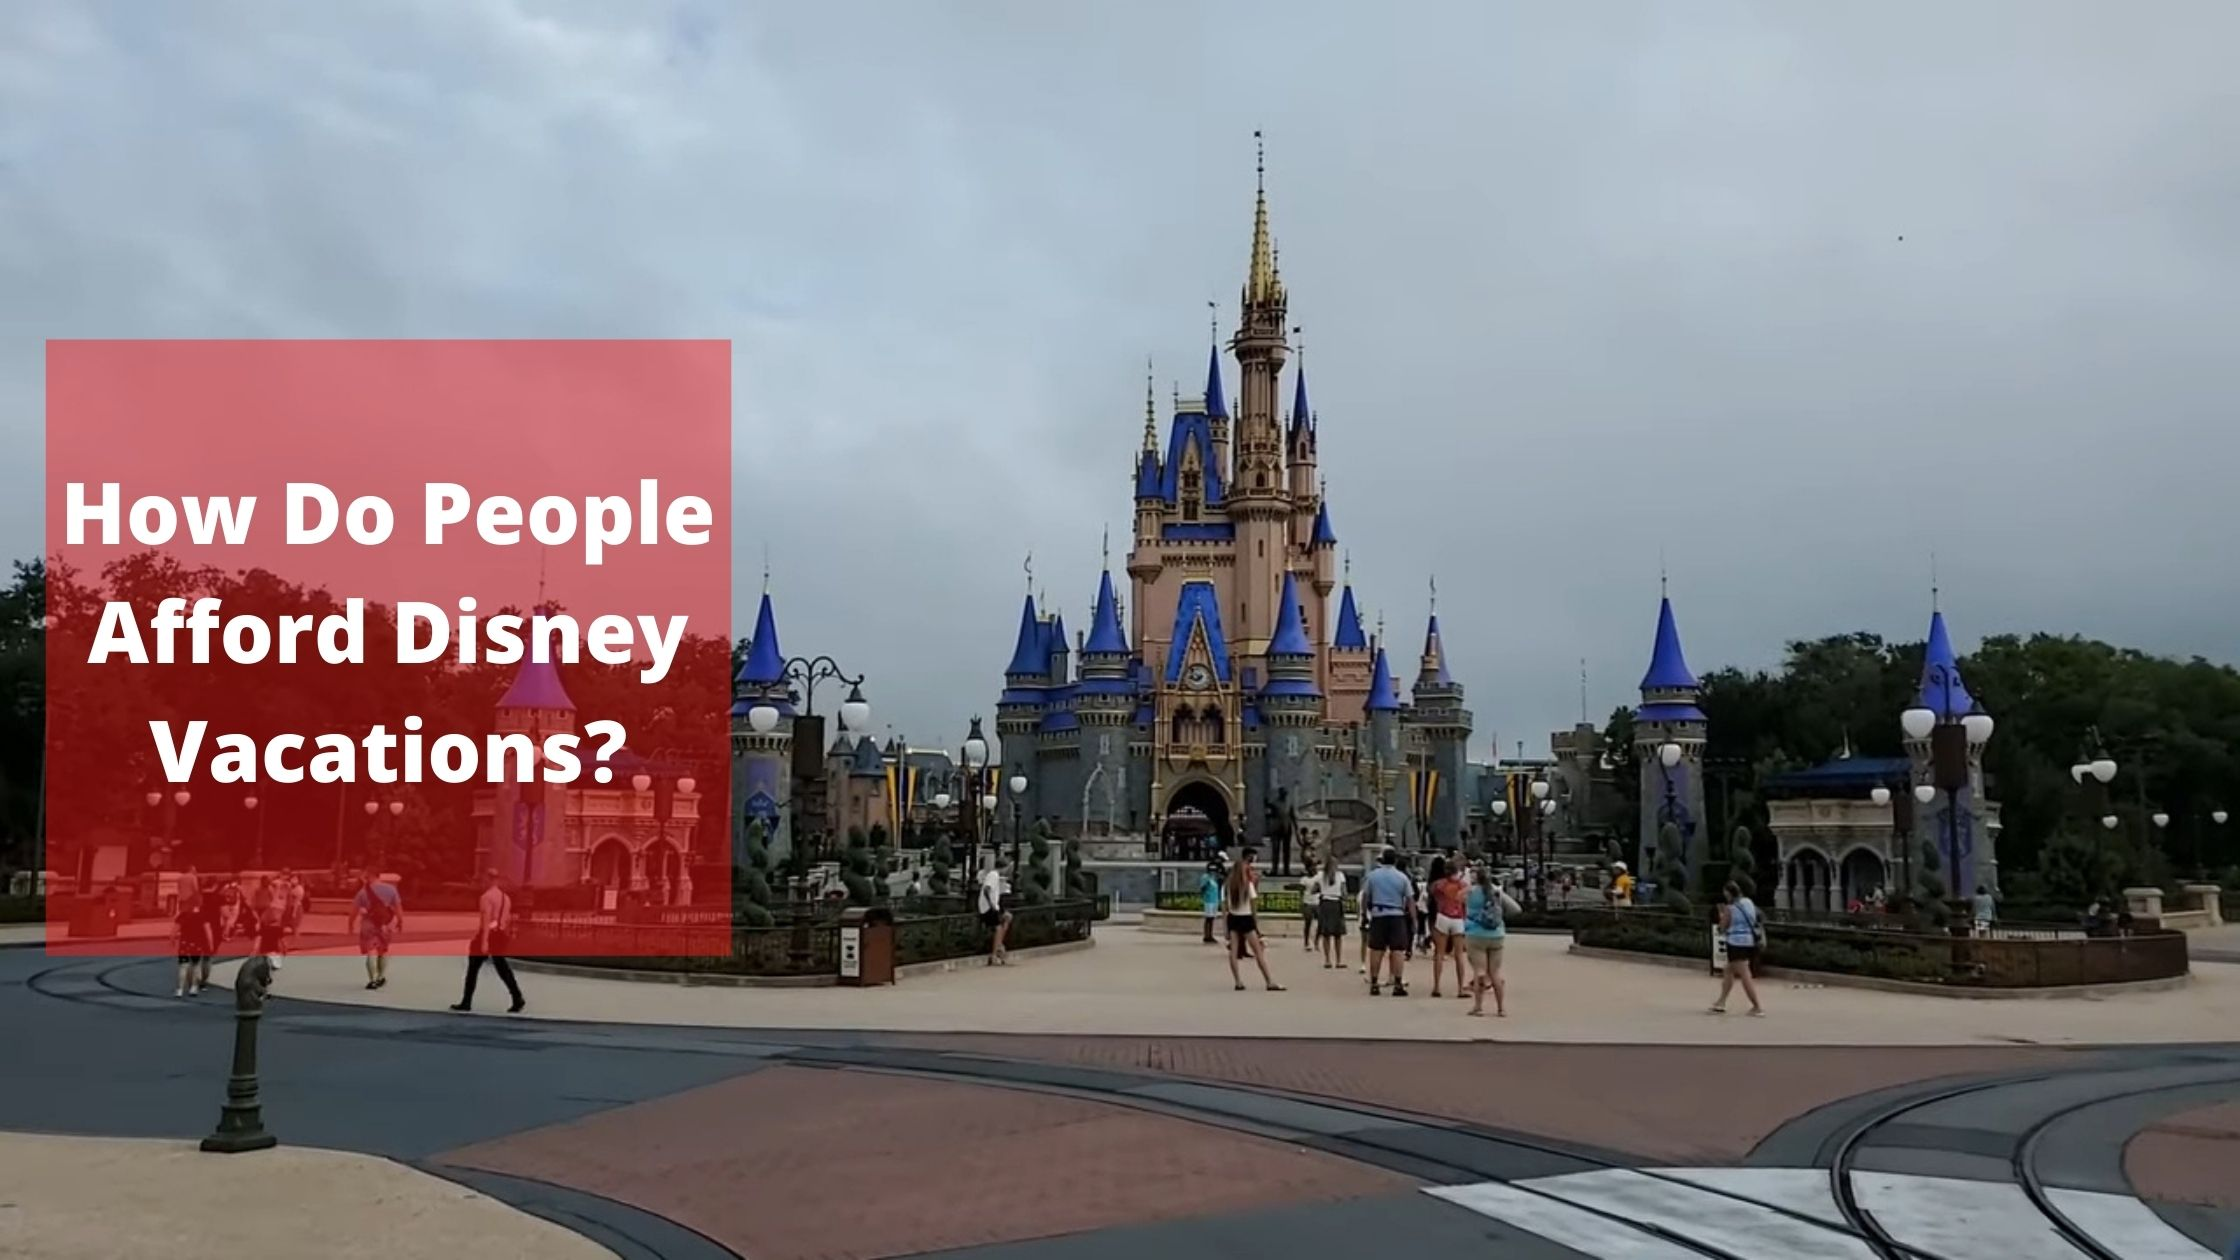 How Do People Afford Disney Vacations